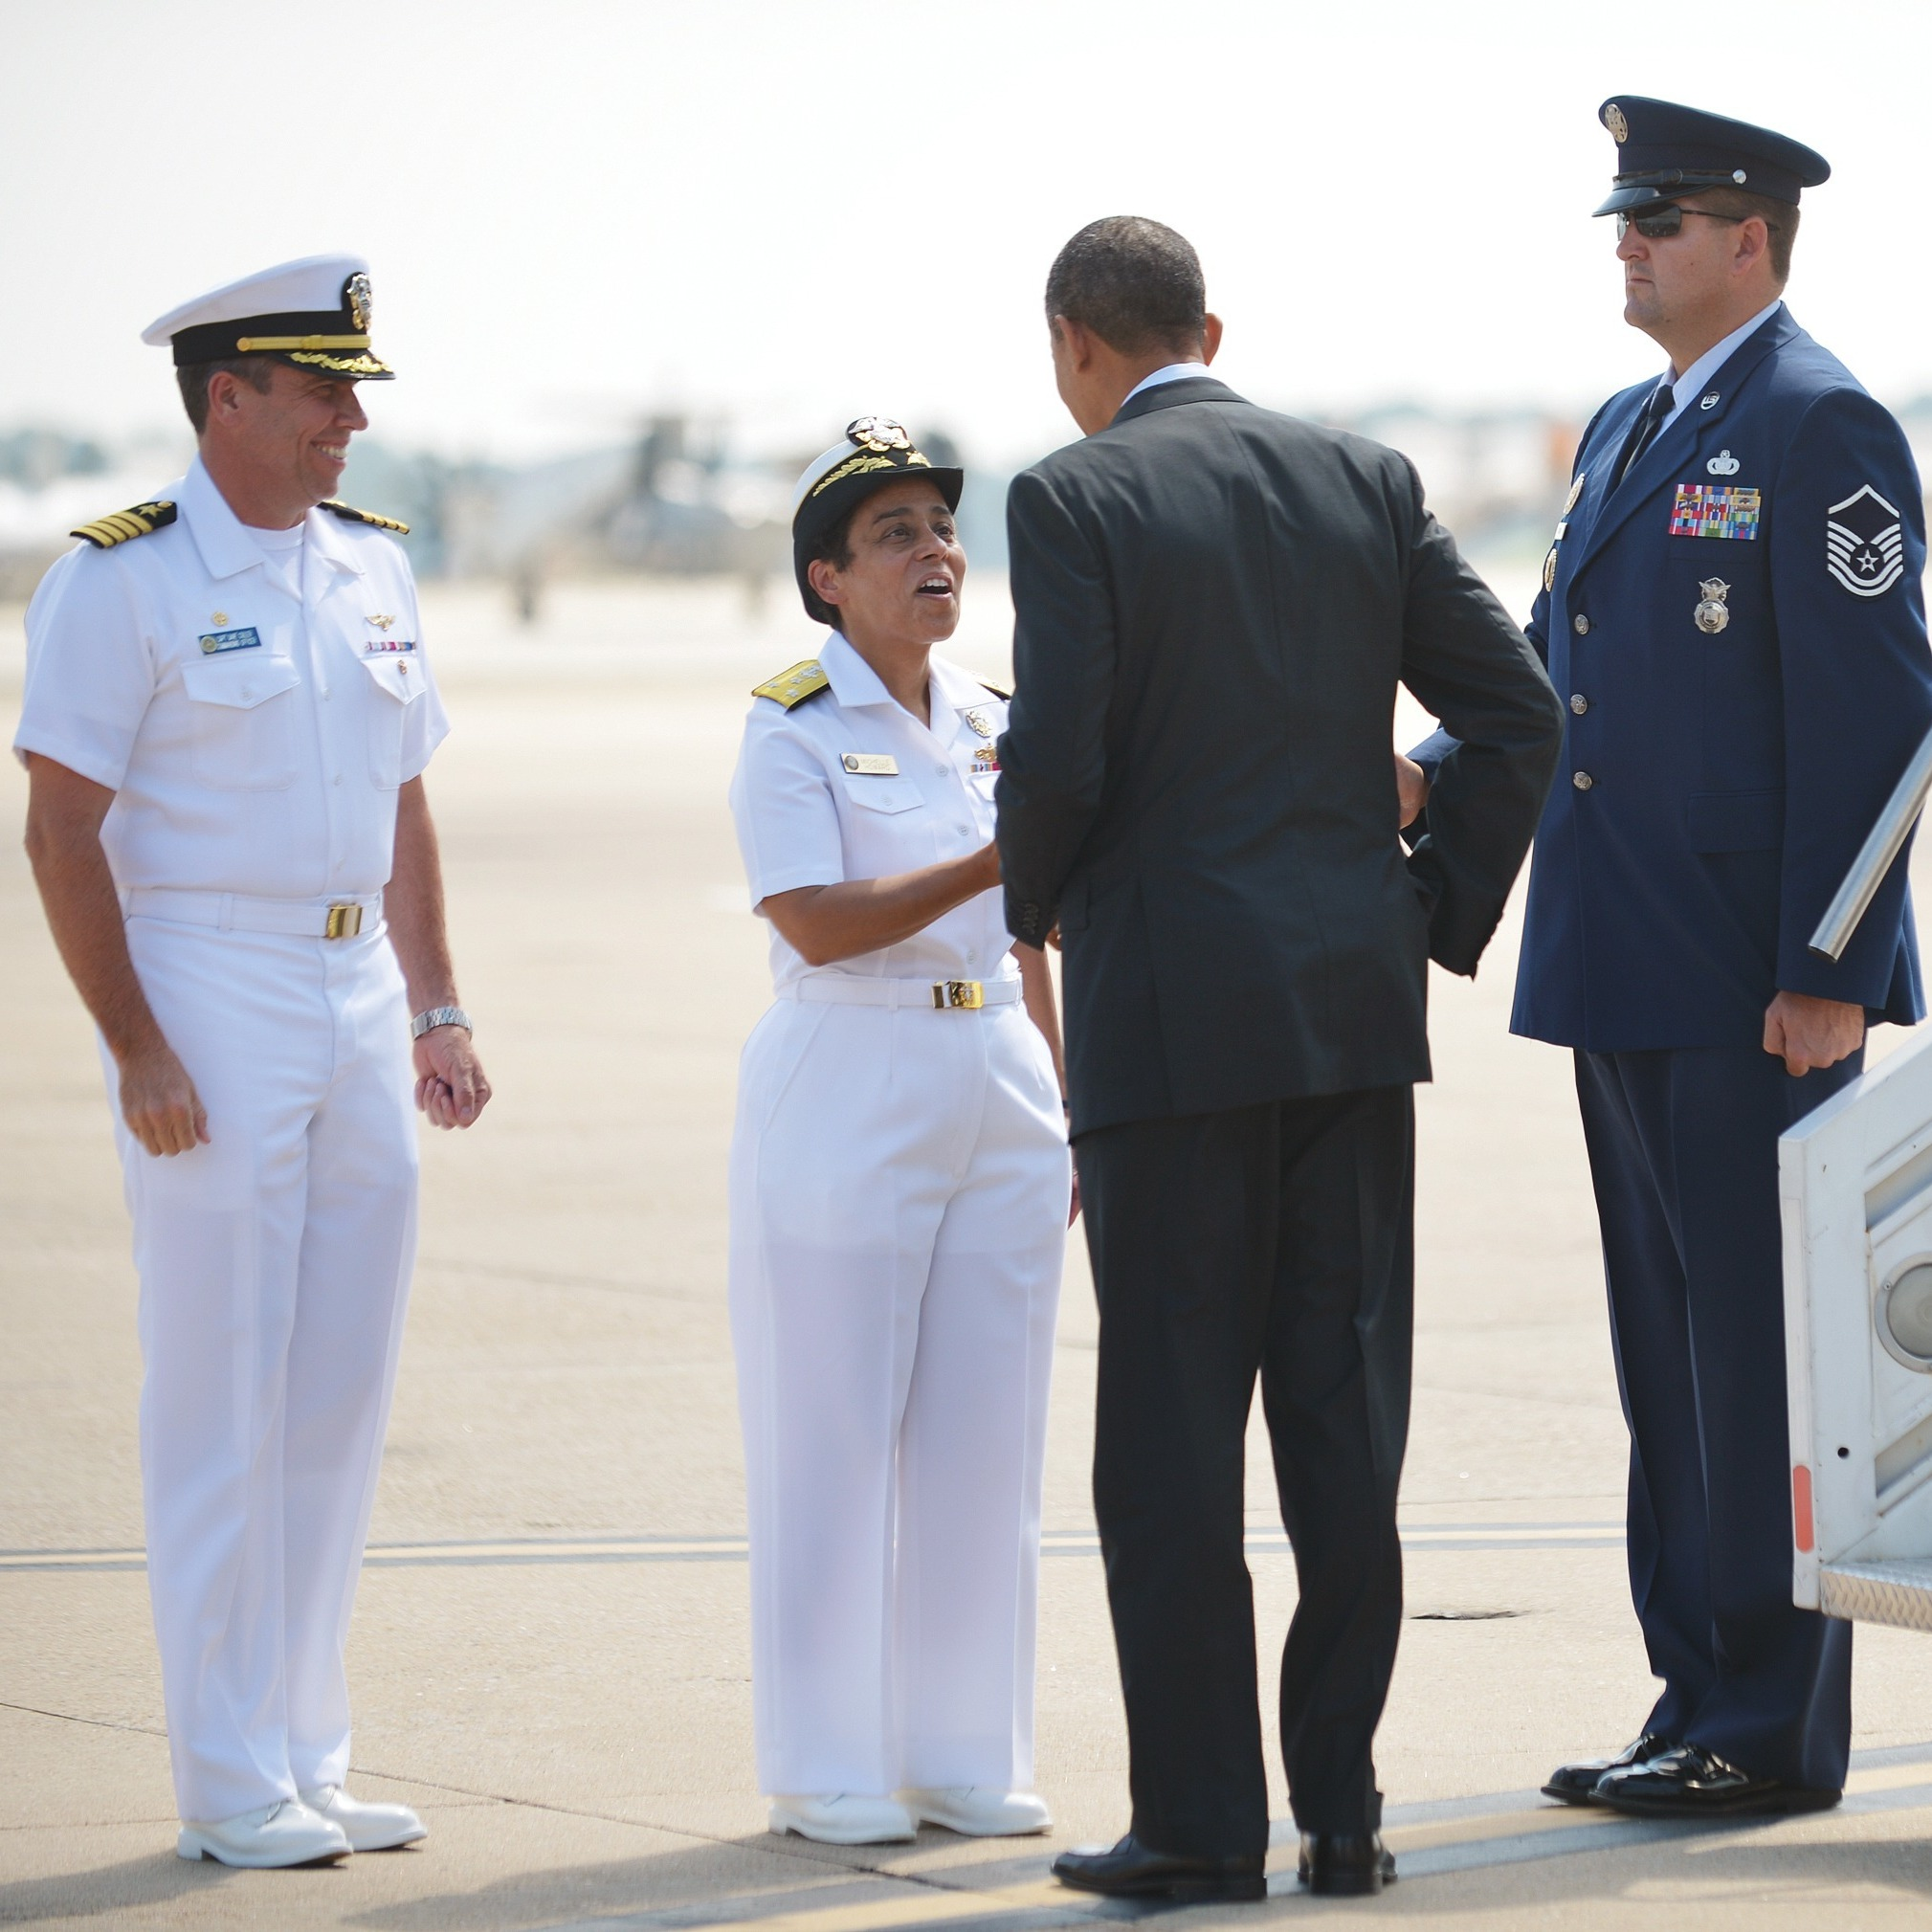 President Obama is greeted by naval officers at Naval Air Station Norfolk, in Norfolk, Va., on Sept. 4.